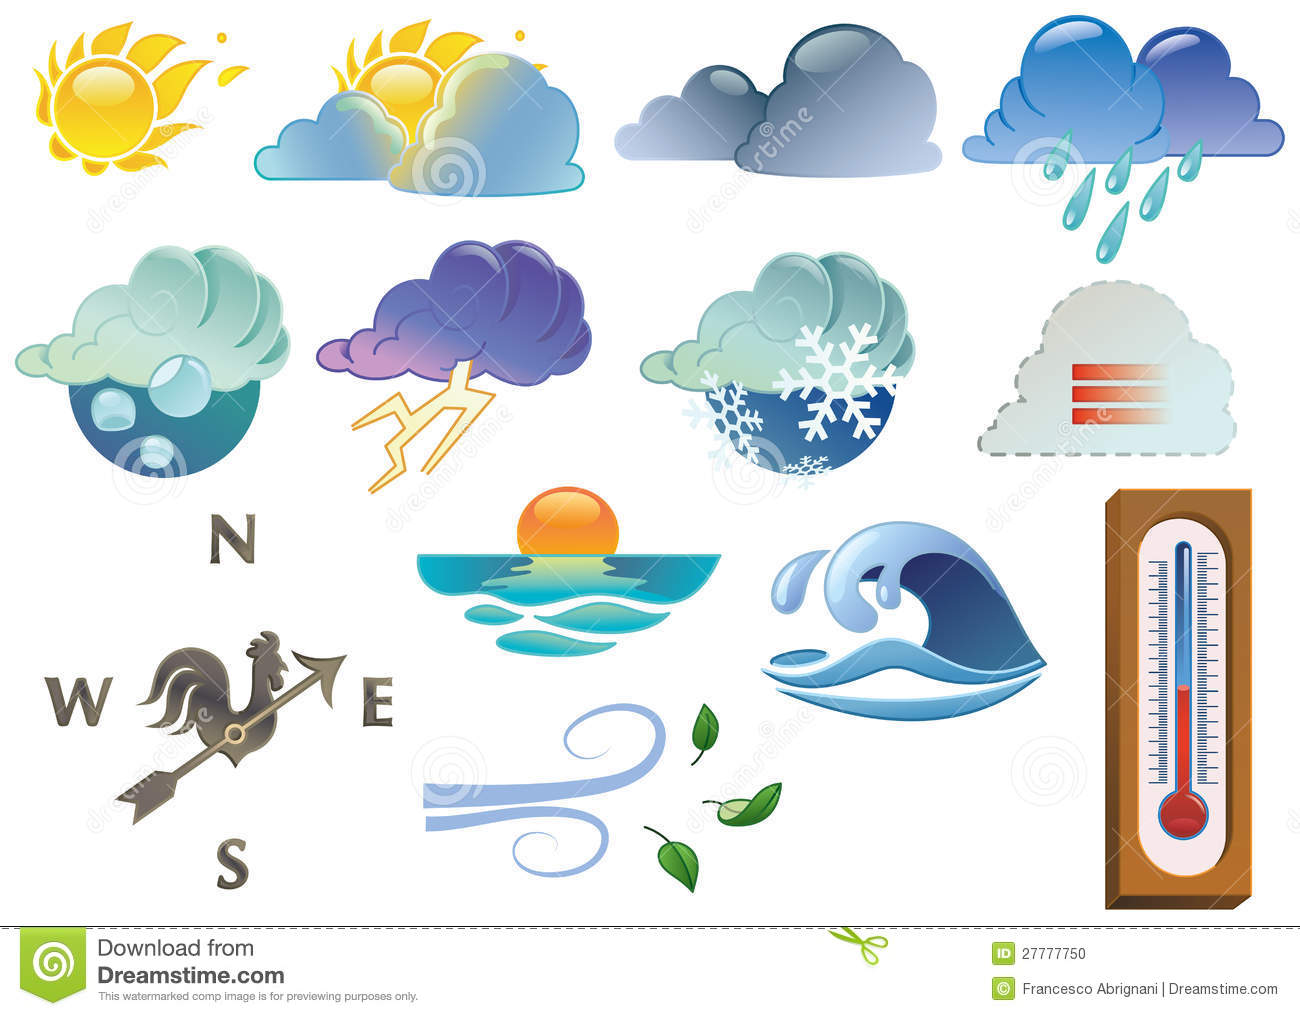 Weather symbols stock vector illustration of climate 27777750 weather symbols biocorpaavc Choice Image